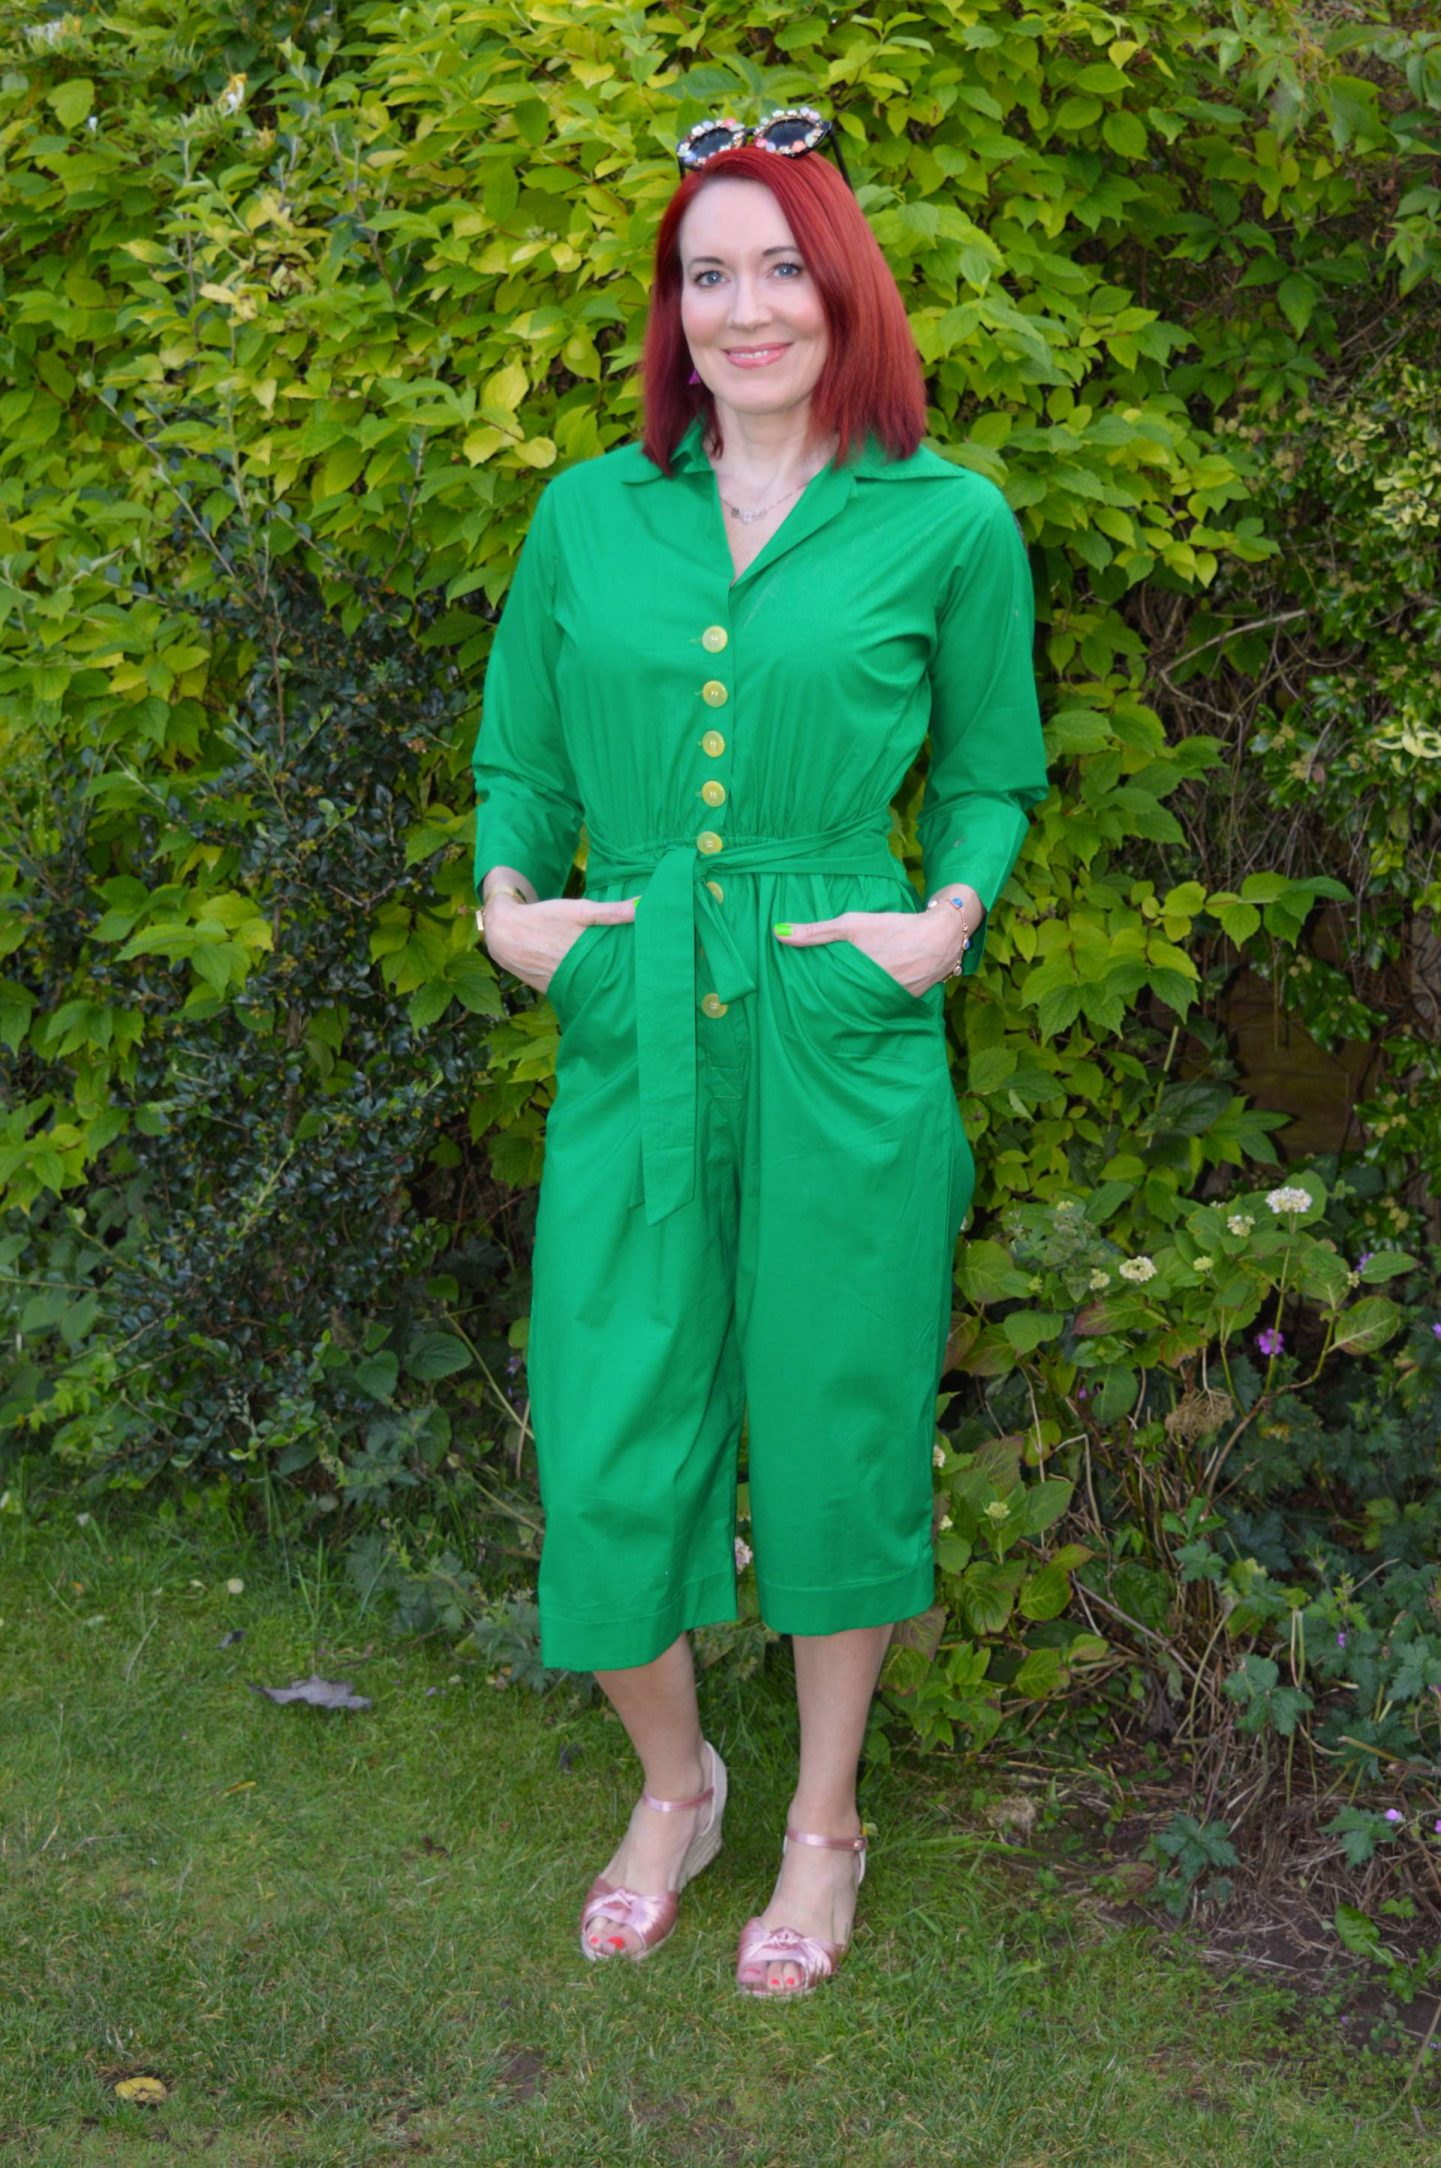 Sizzlin' Backyard BBQ Style - July's Stylish Monday Link Up, Love Your Look green parrot jumpsuit, what to wear for a backyard BBQ